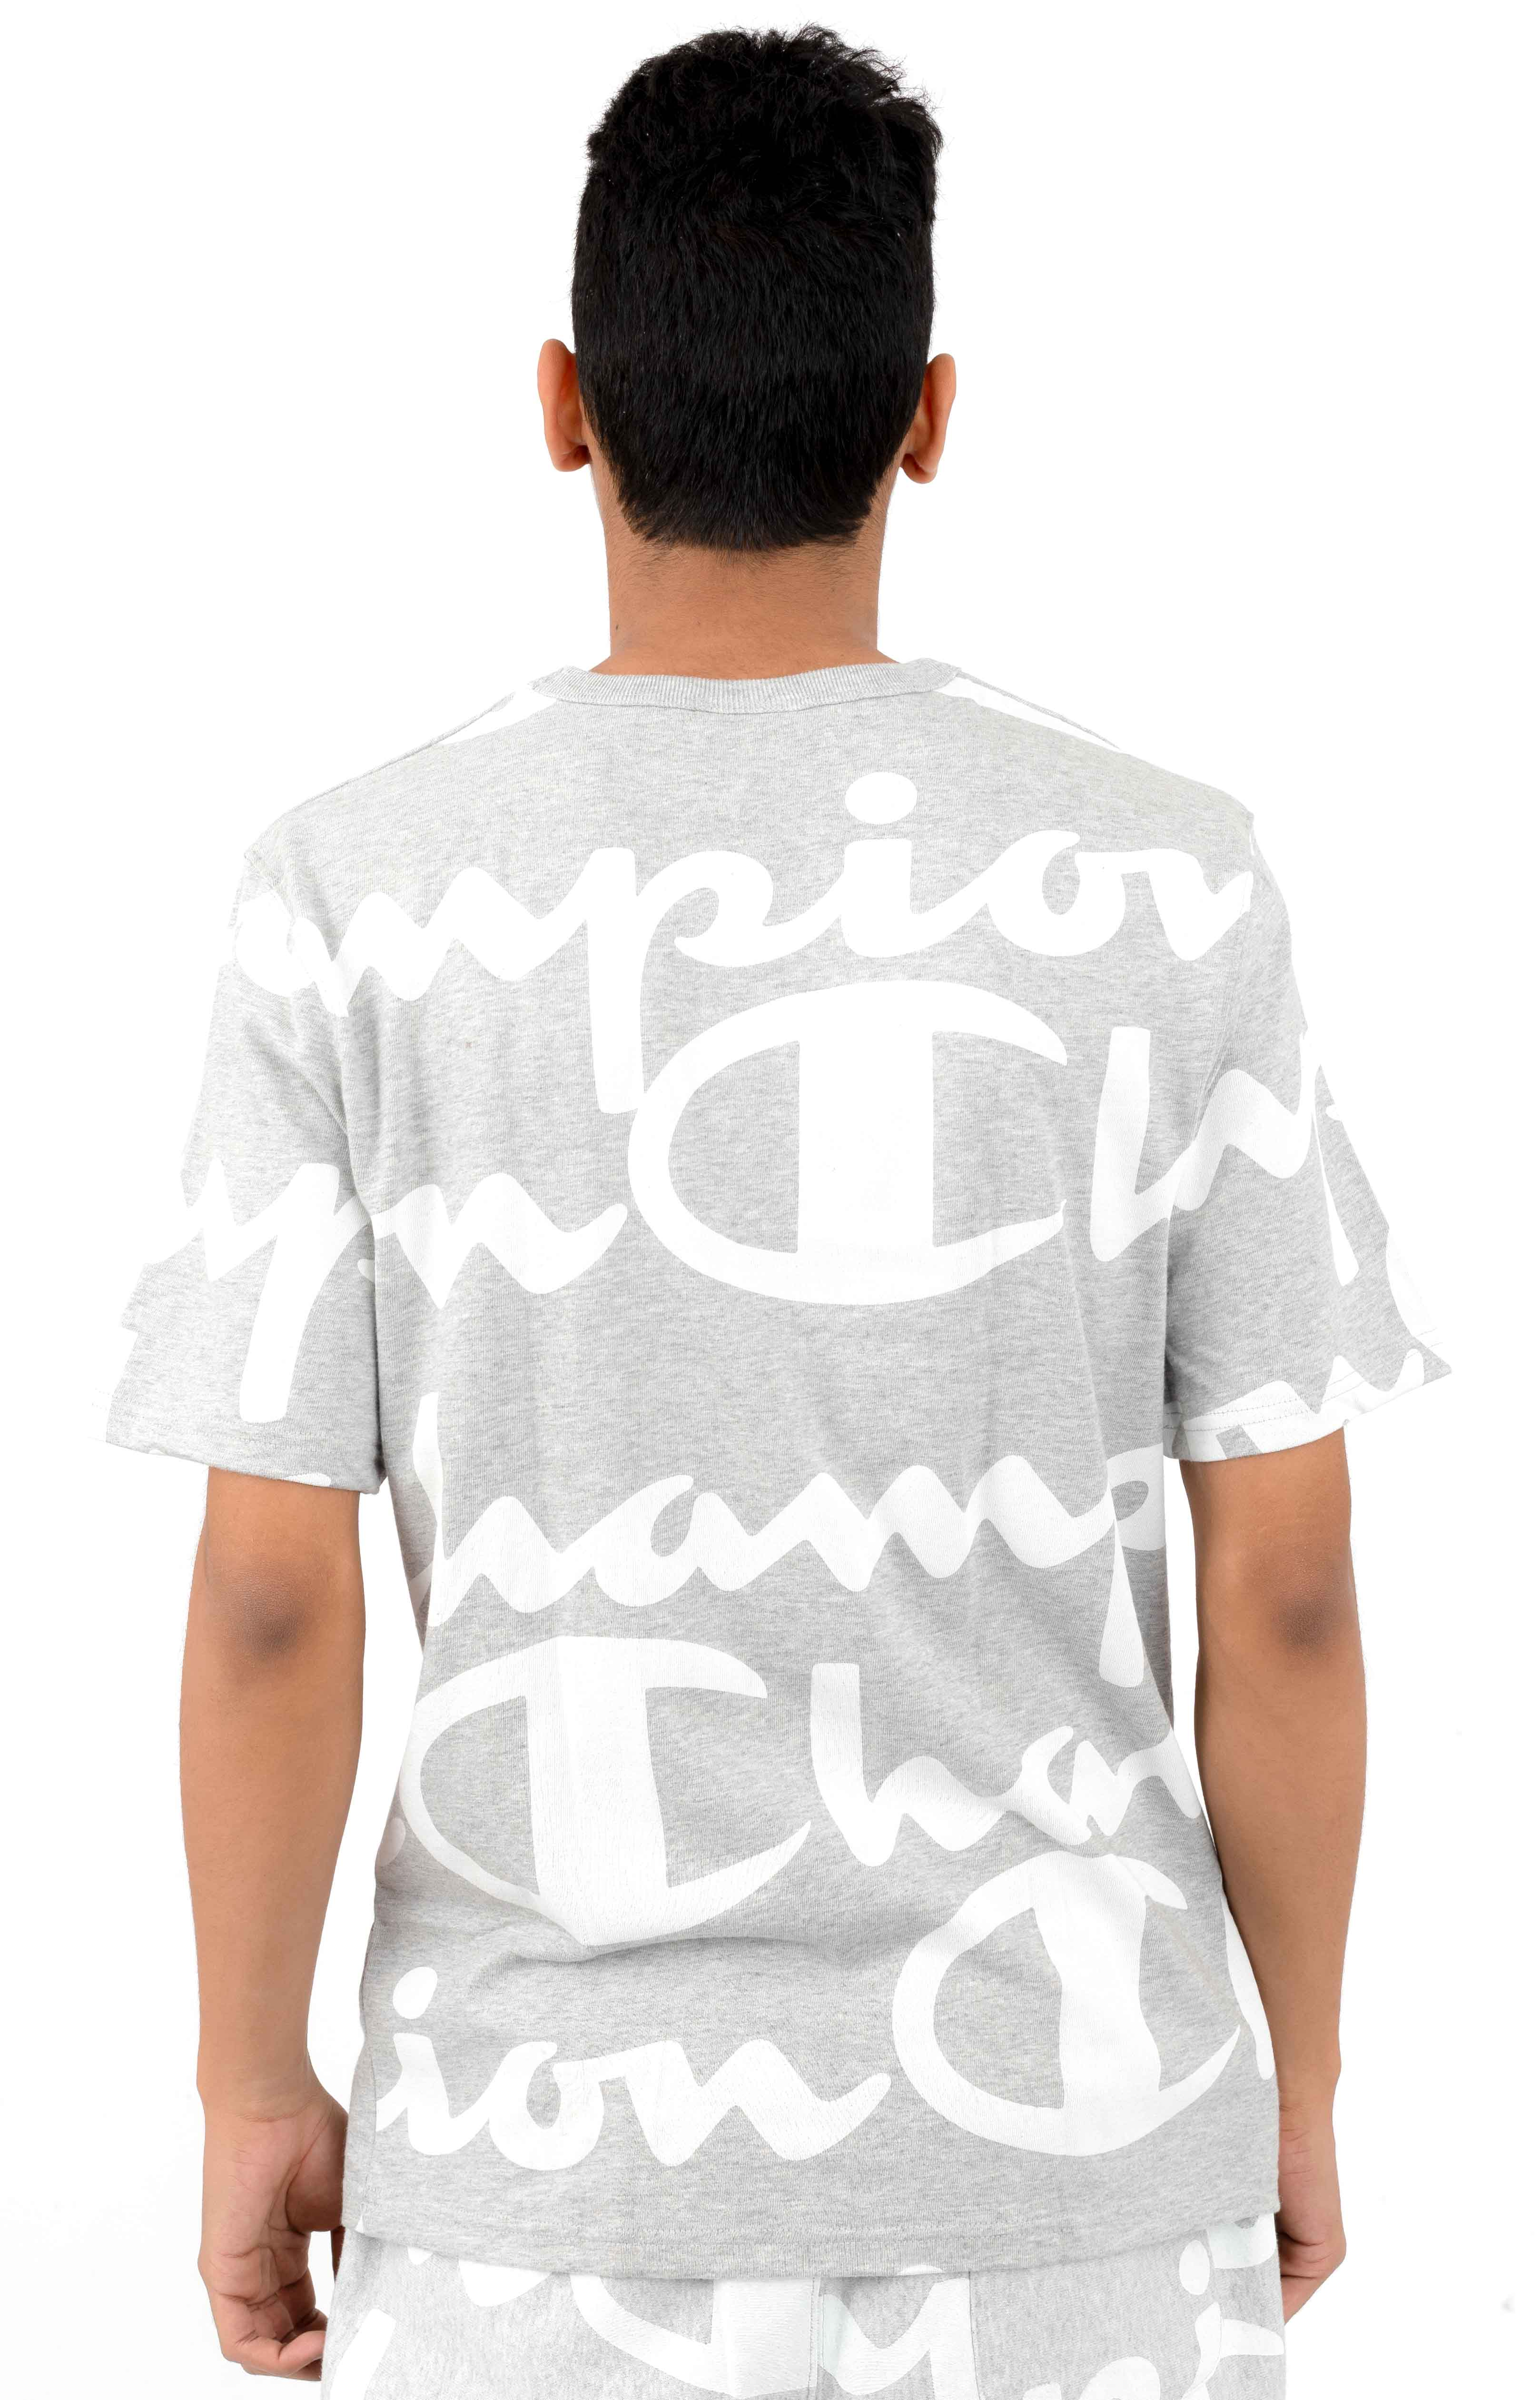 5cce55ad Heritage Giant All Over Script T-Shirt - Oxford Grey. Thumbnail 1 Thumbnail  1 Thumbnail 1